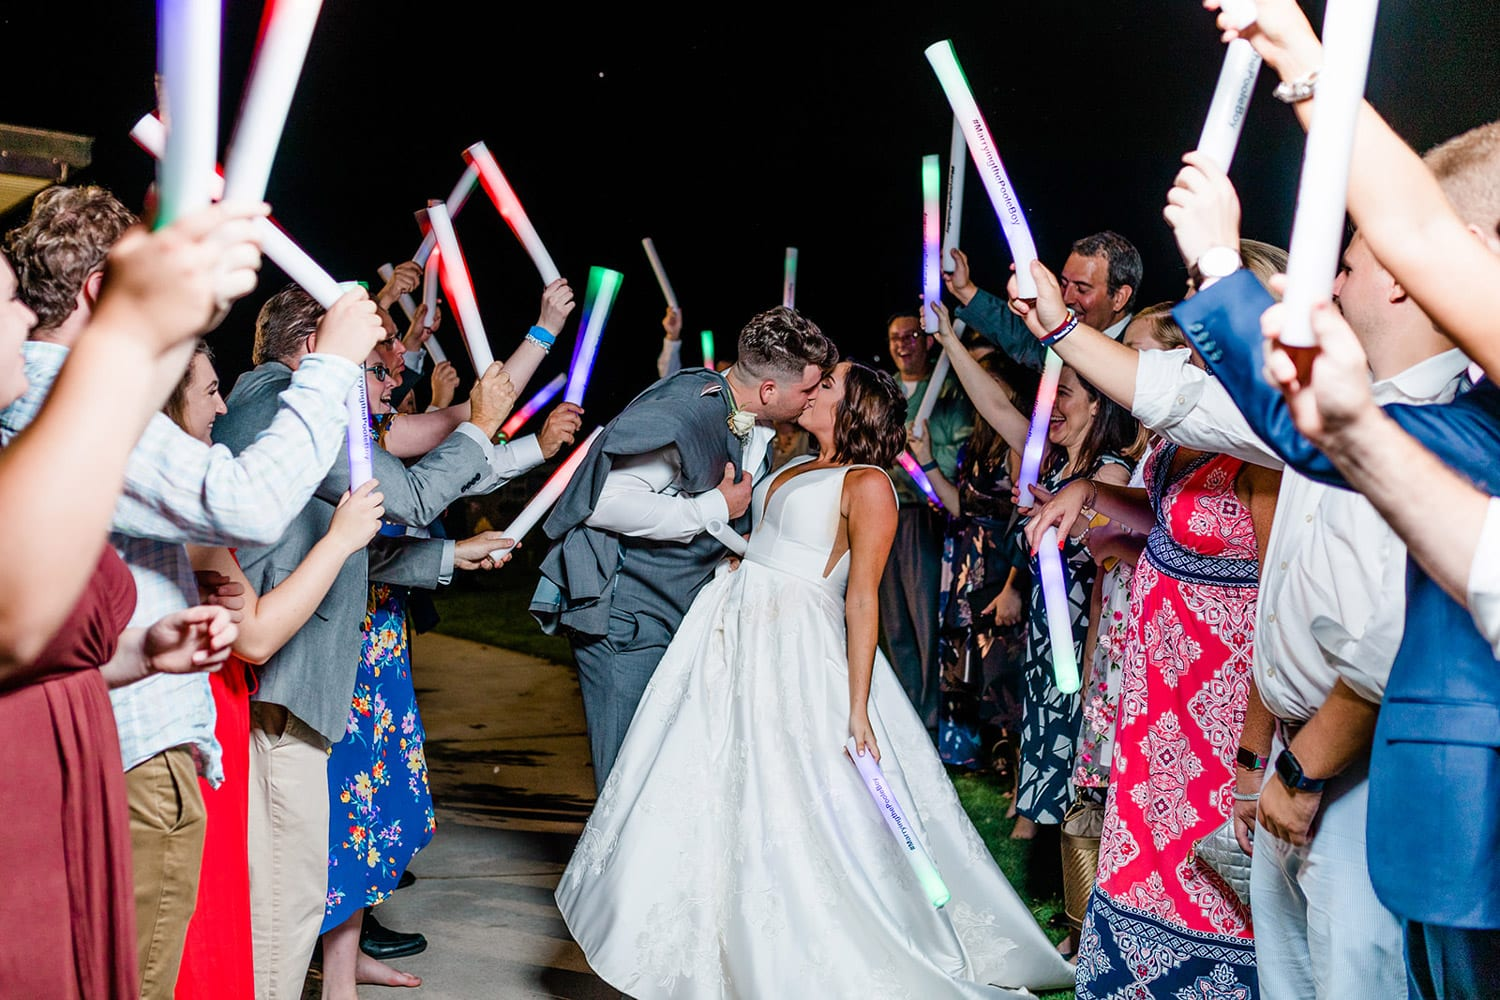 Groom kisses bride during send-off with glow sticks